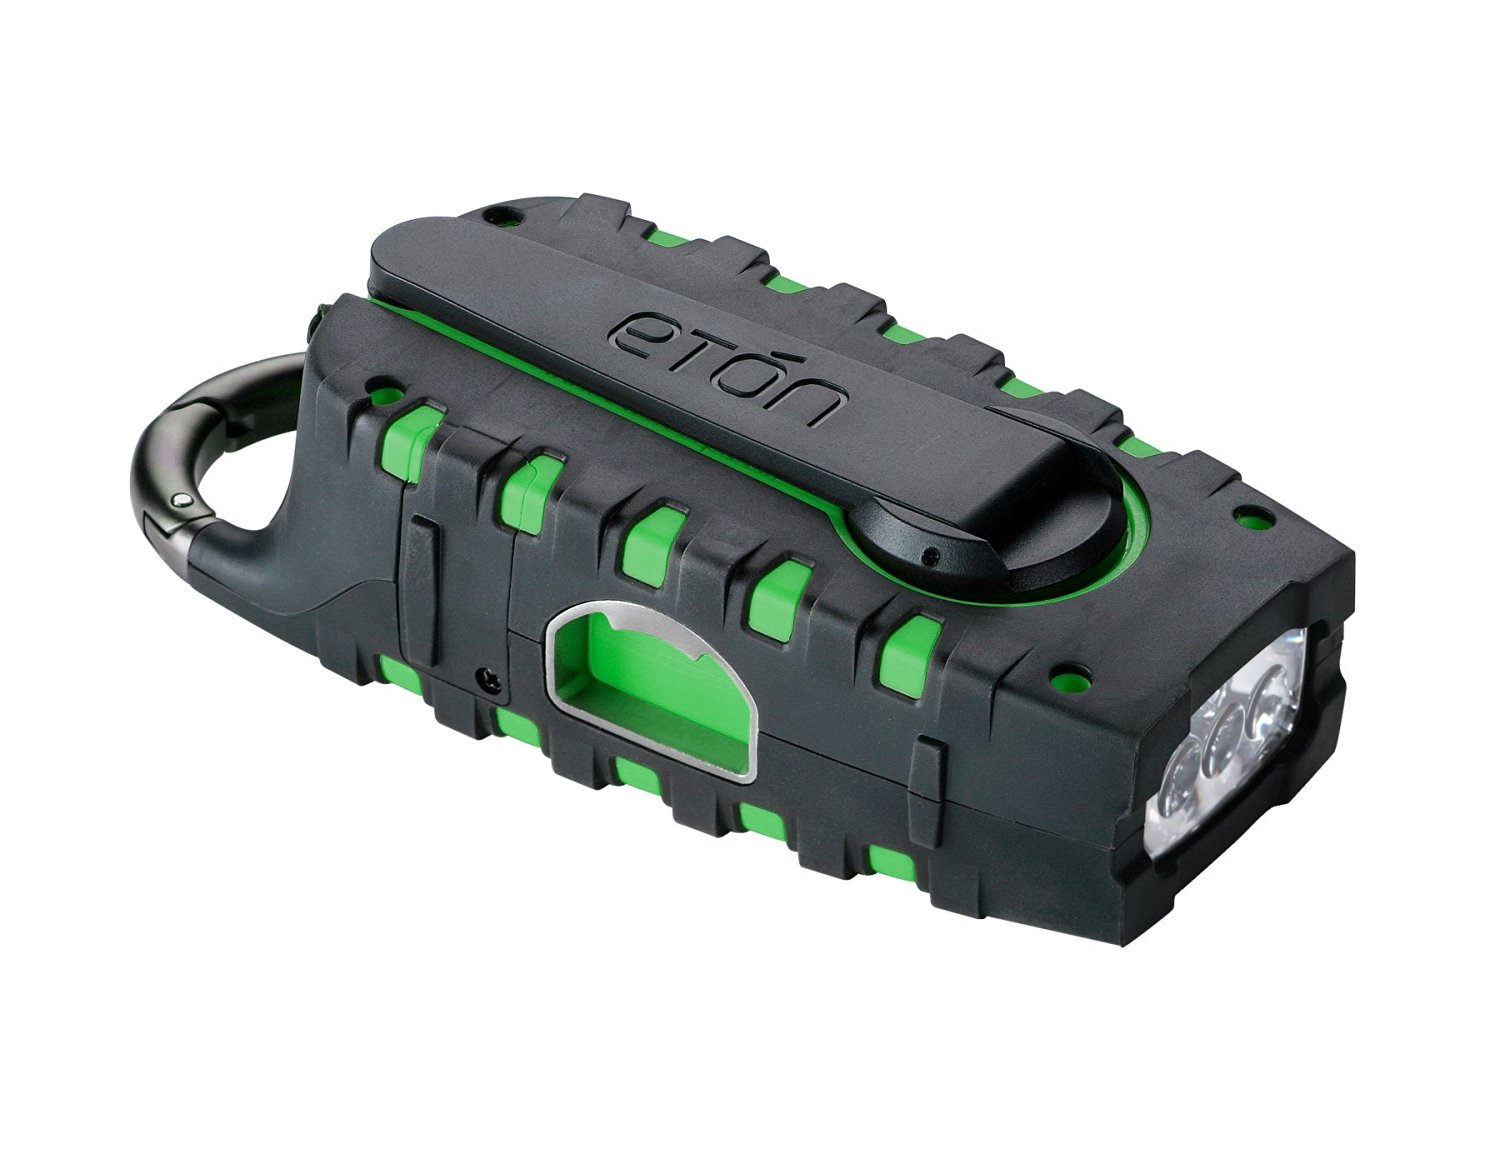 Etón SCORPION Rugged, Portable Multi-Purpose Digital Radio with Crank Power Back-up and Weather Alerts - Green (NSP100GR)